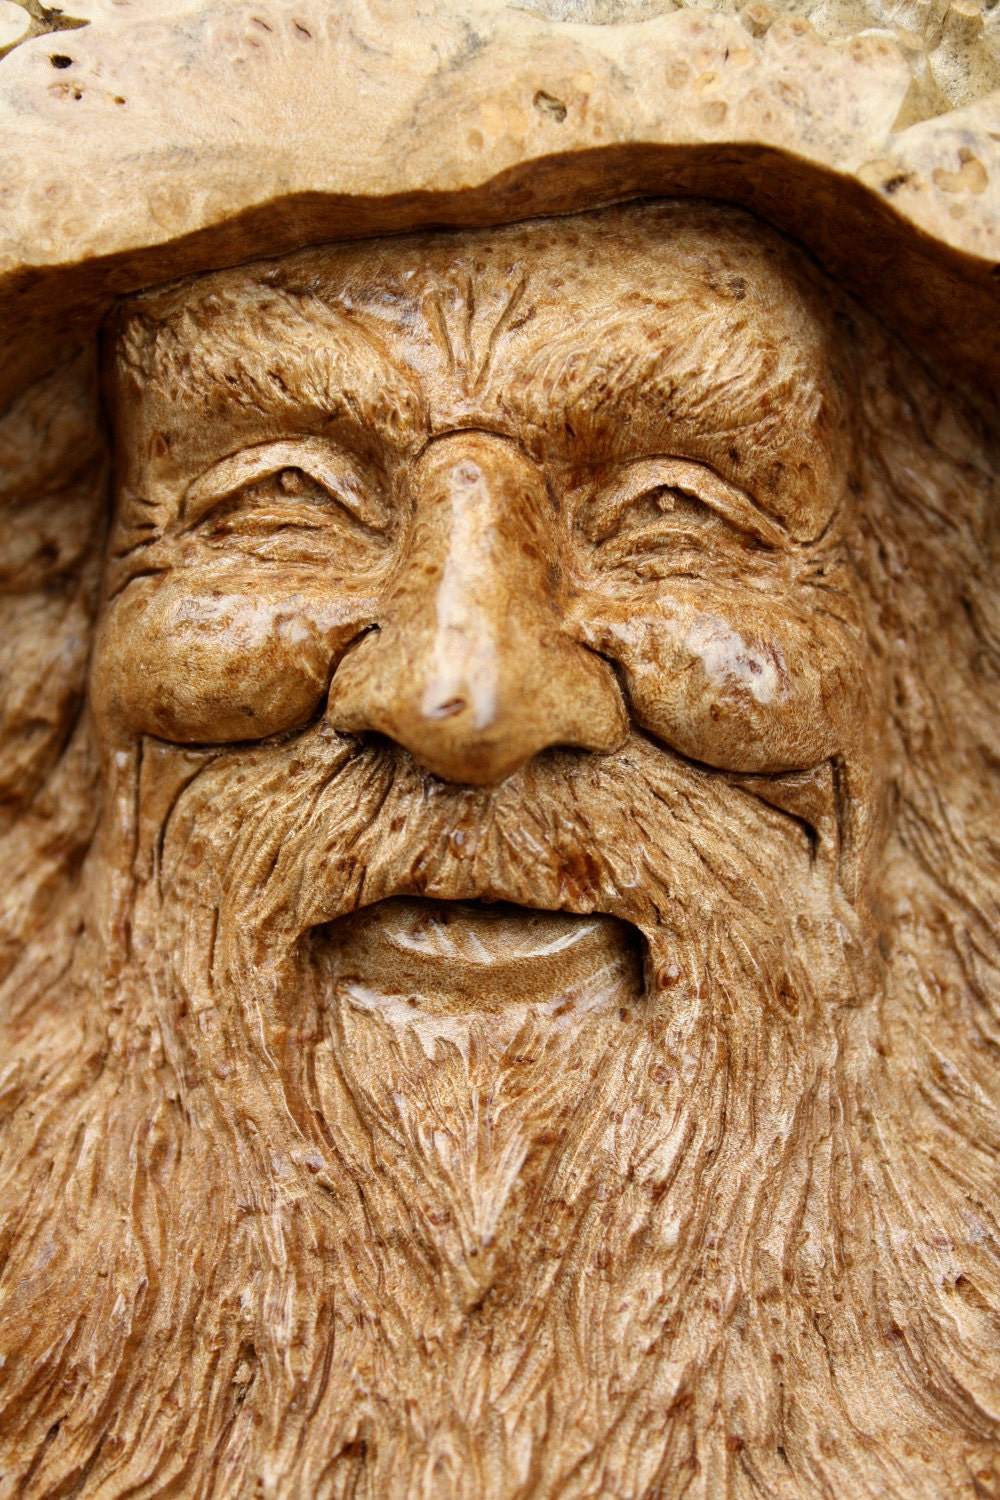 Wood spirit carvings wedding gift for dad rustic